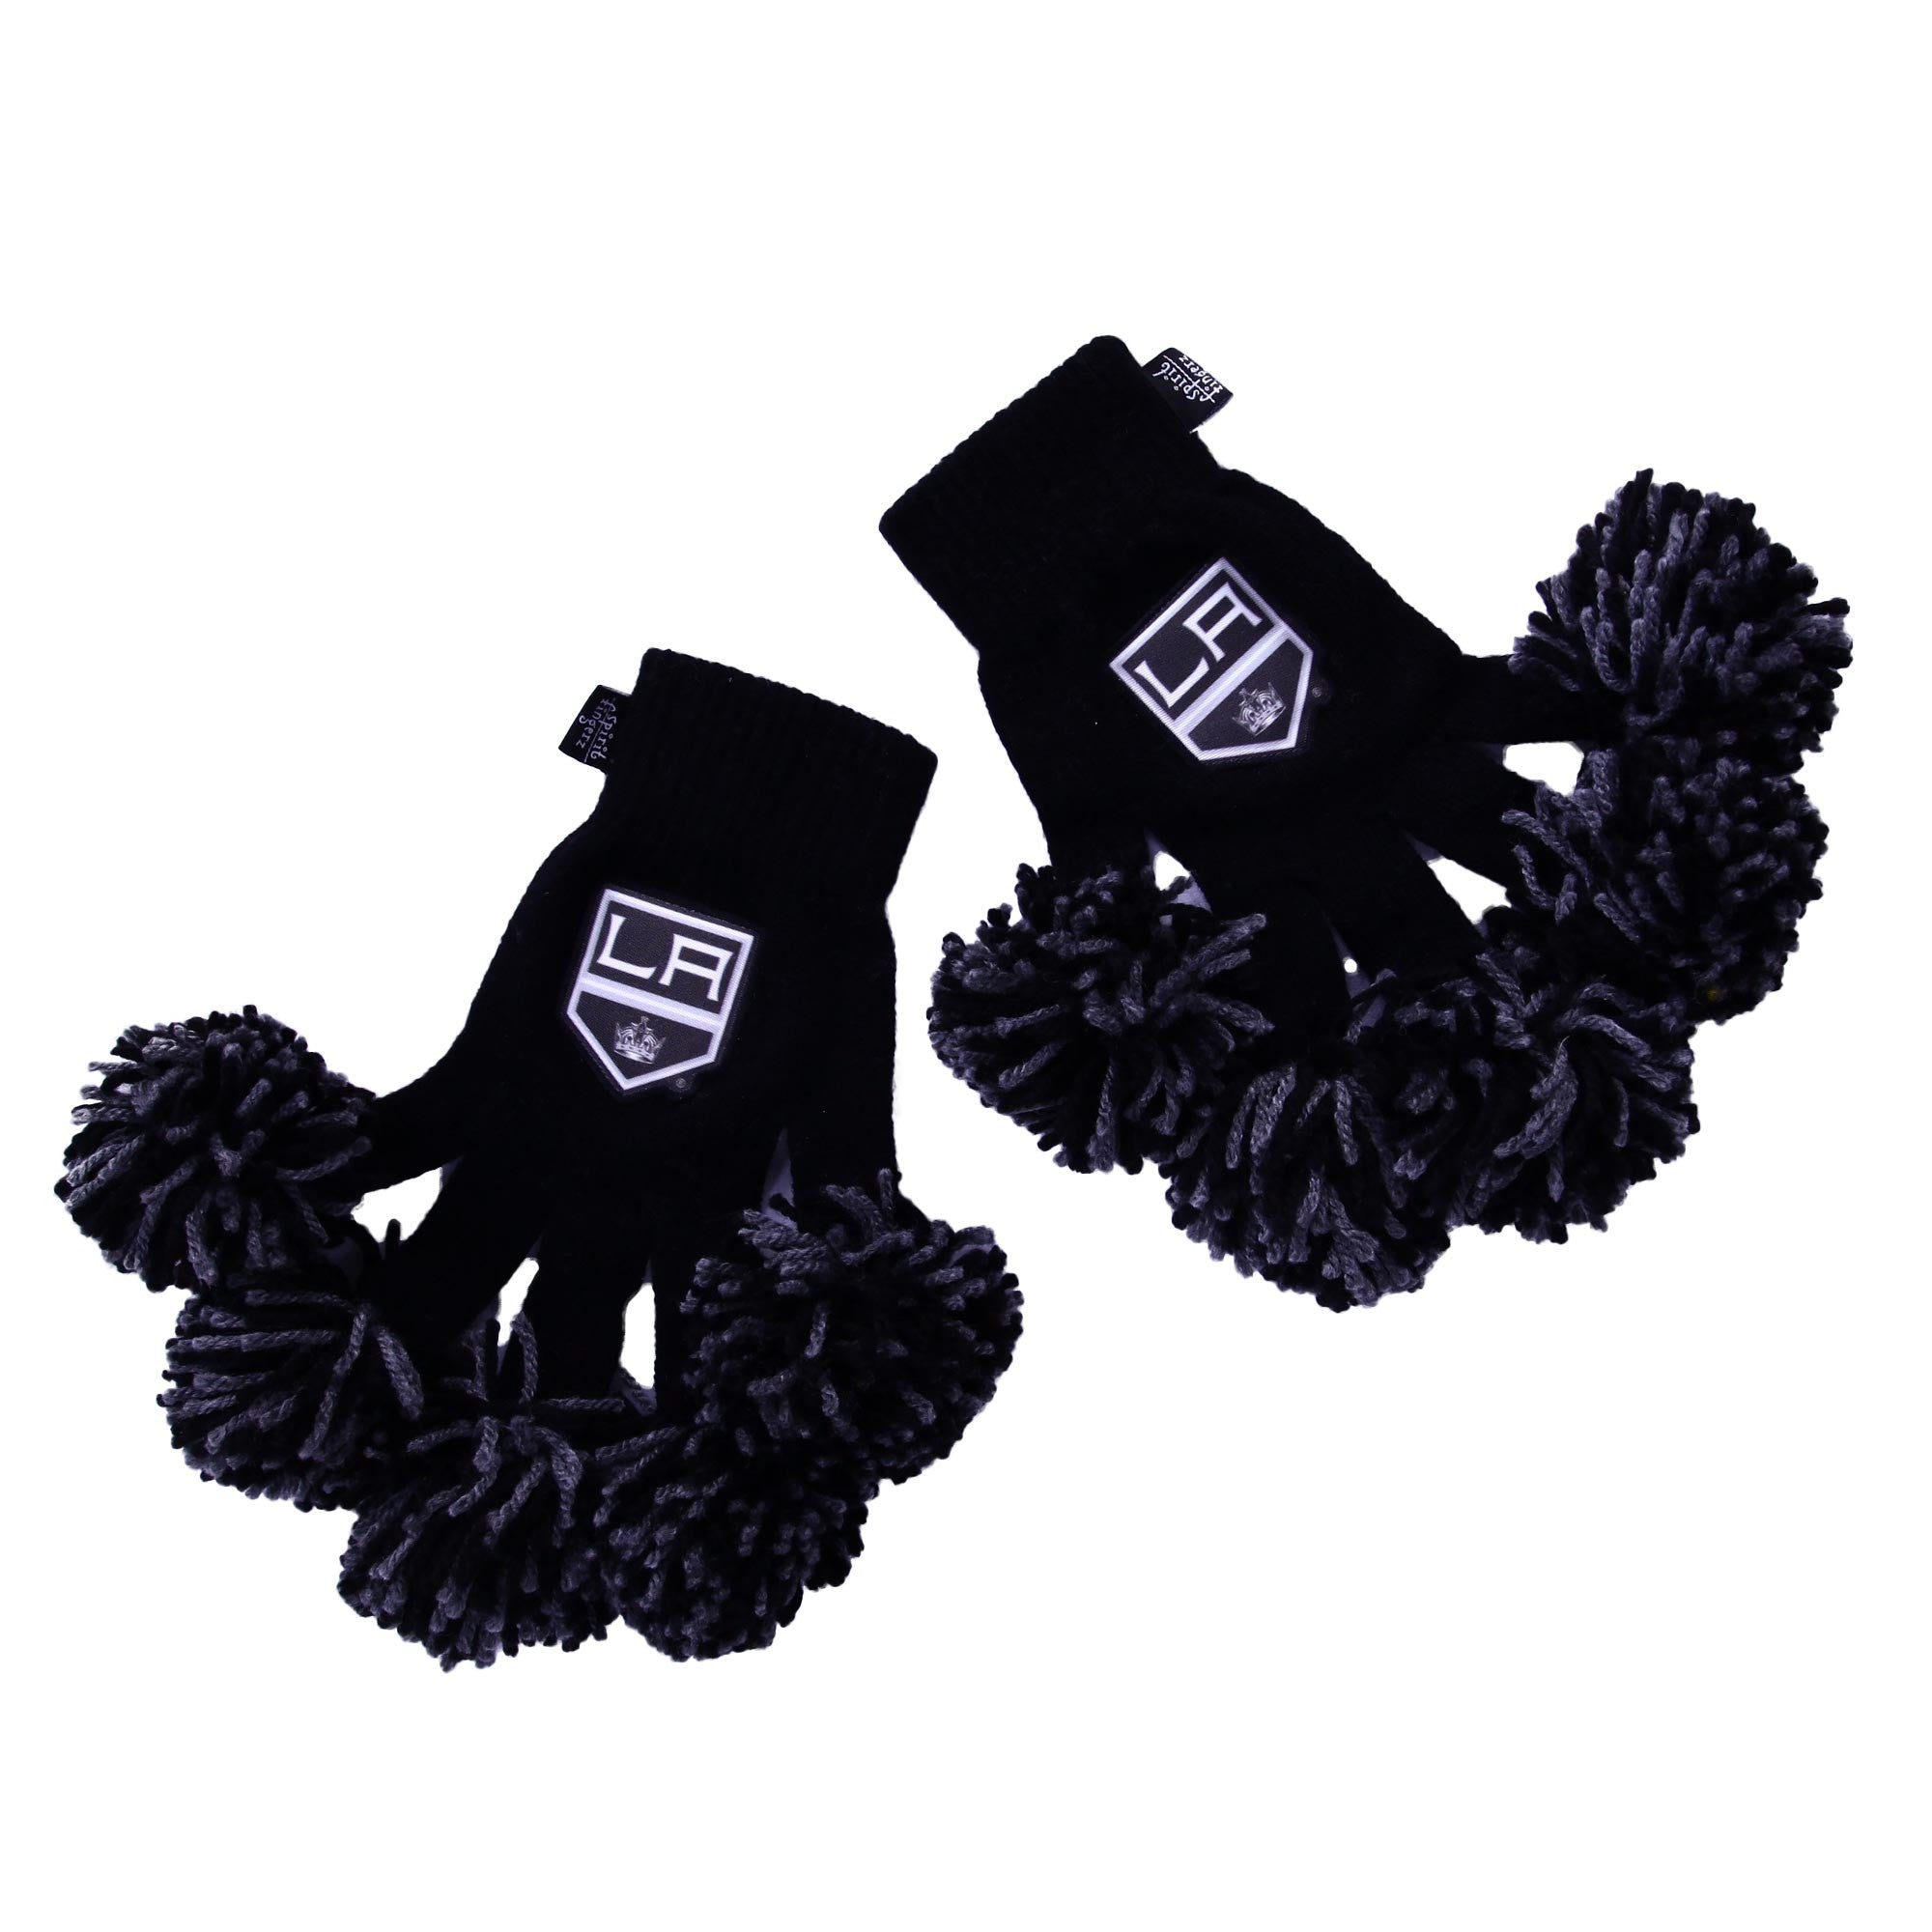 Los Angeles Kings NHL Spirit Fingerz Cheerleading Pom-Pom Gloves